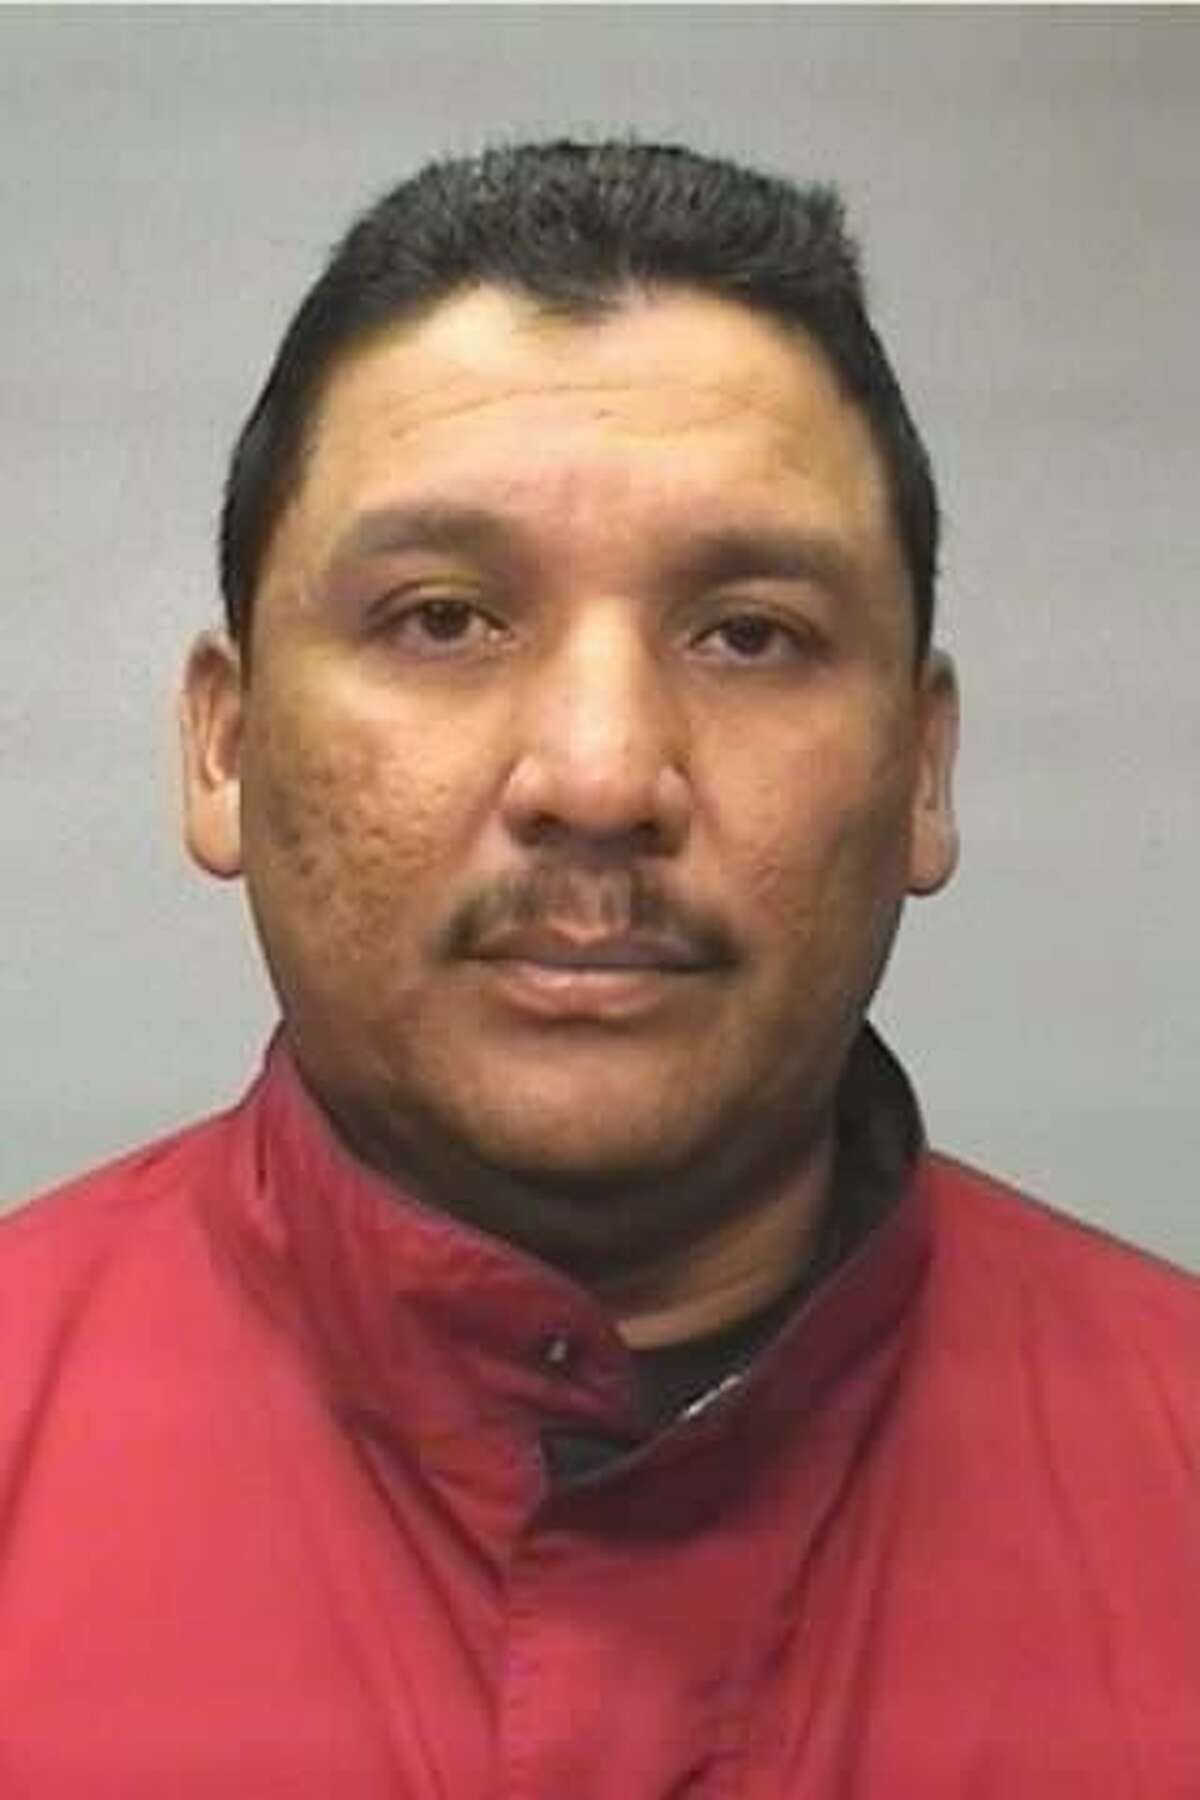 Police Chief Orlando Rodriguez told the McAllen Monitor that Officer Ruben Castillo, 45, was placed on administrative leave without pay two weeks ago. Castillo turned himself in DDec. 17, 2014, and was charged with state-jail felony theft and forgery, according to the Brownsville Police Department's blog.